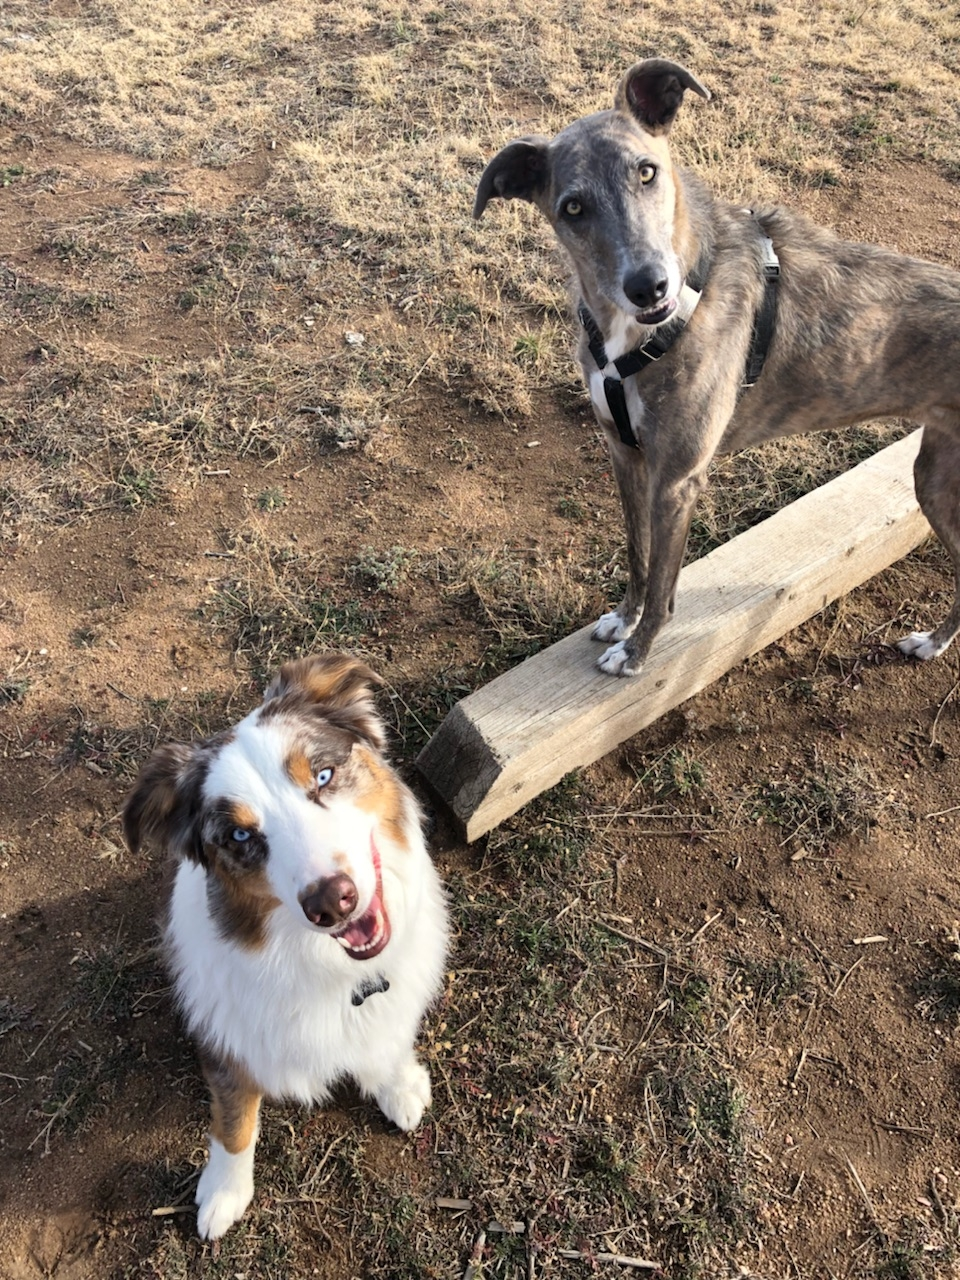 Testing off-leash readiness with your dog